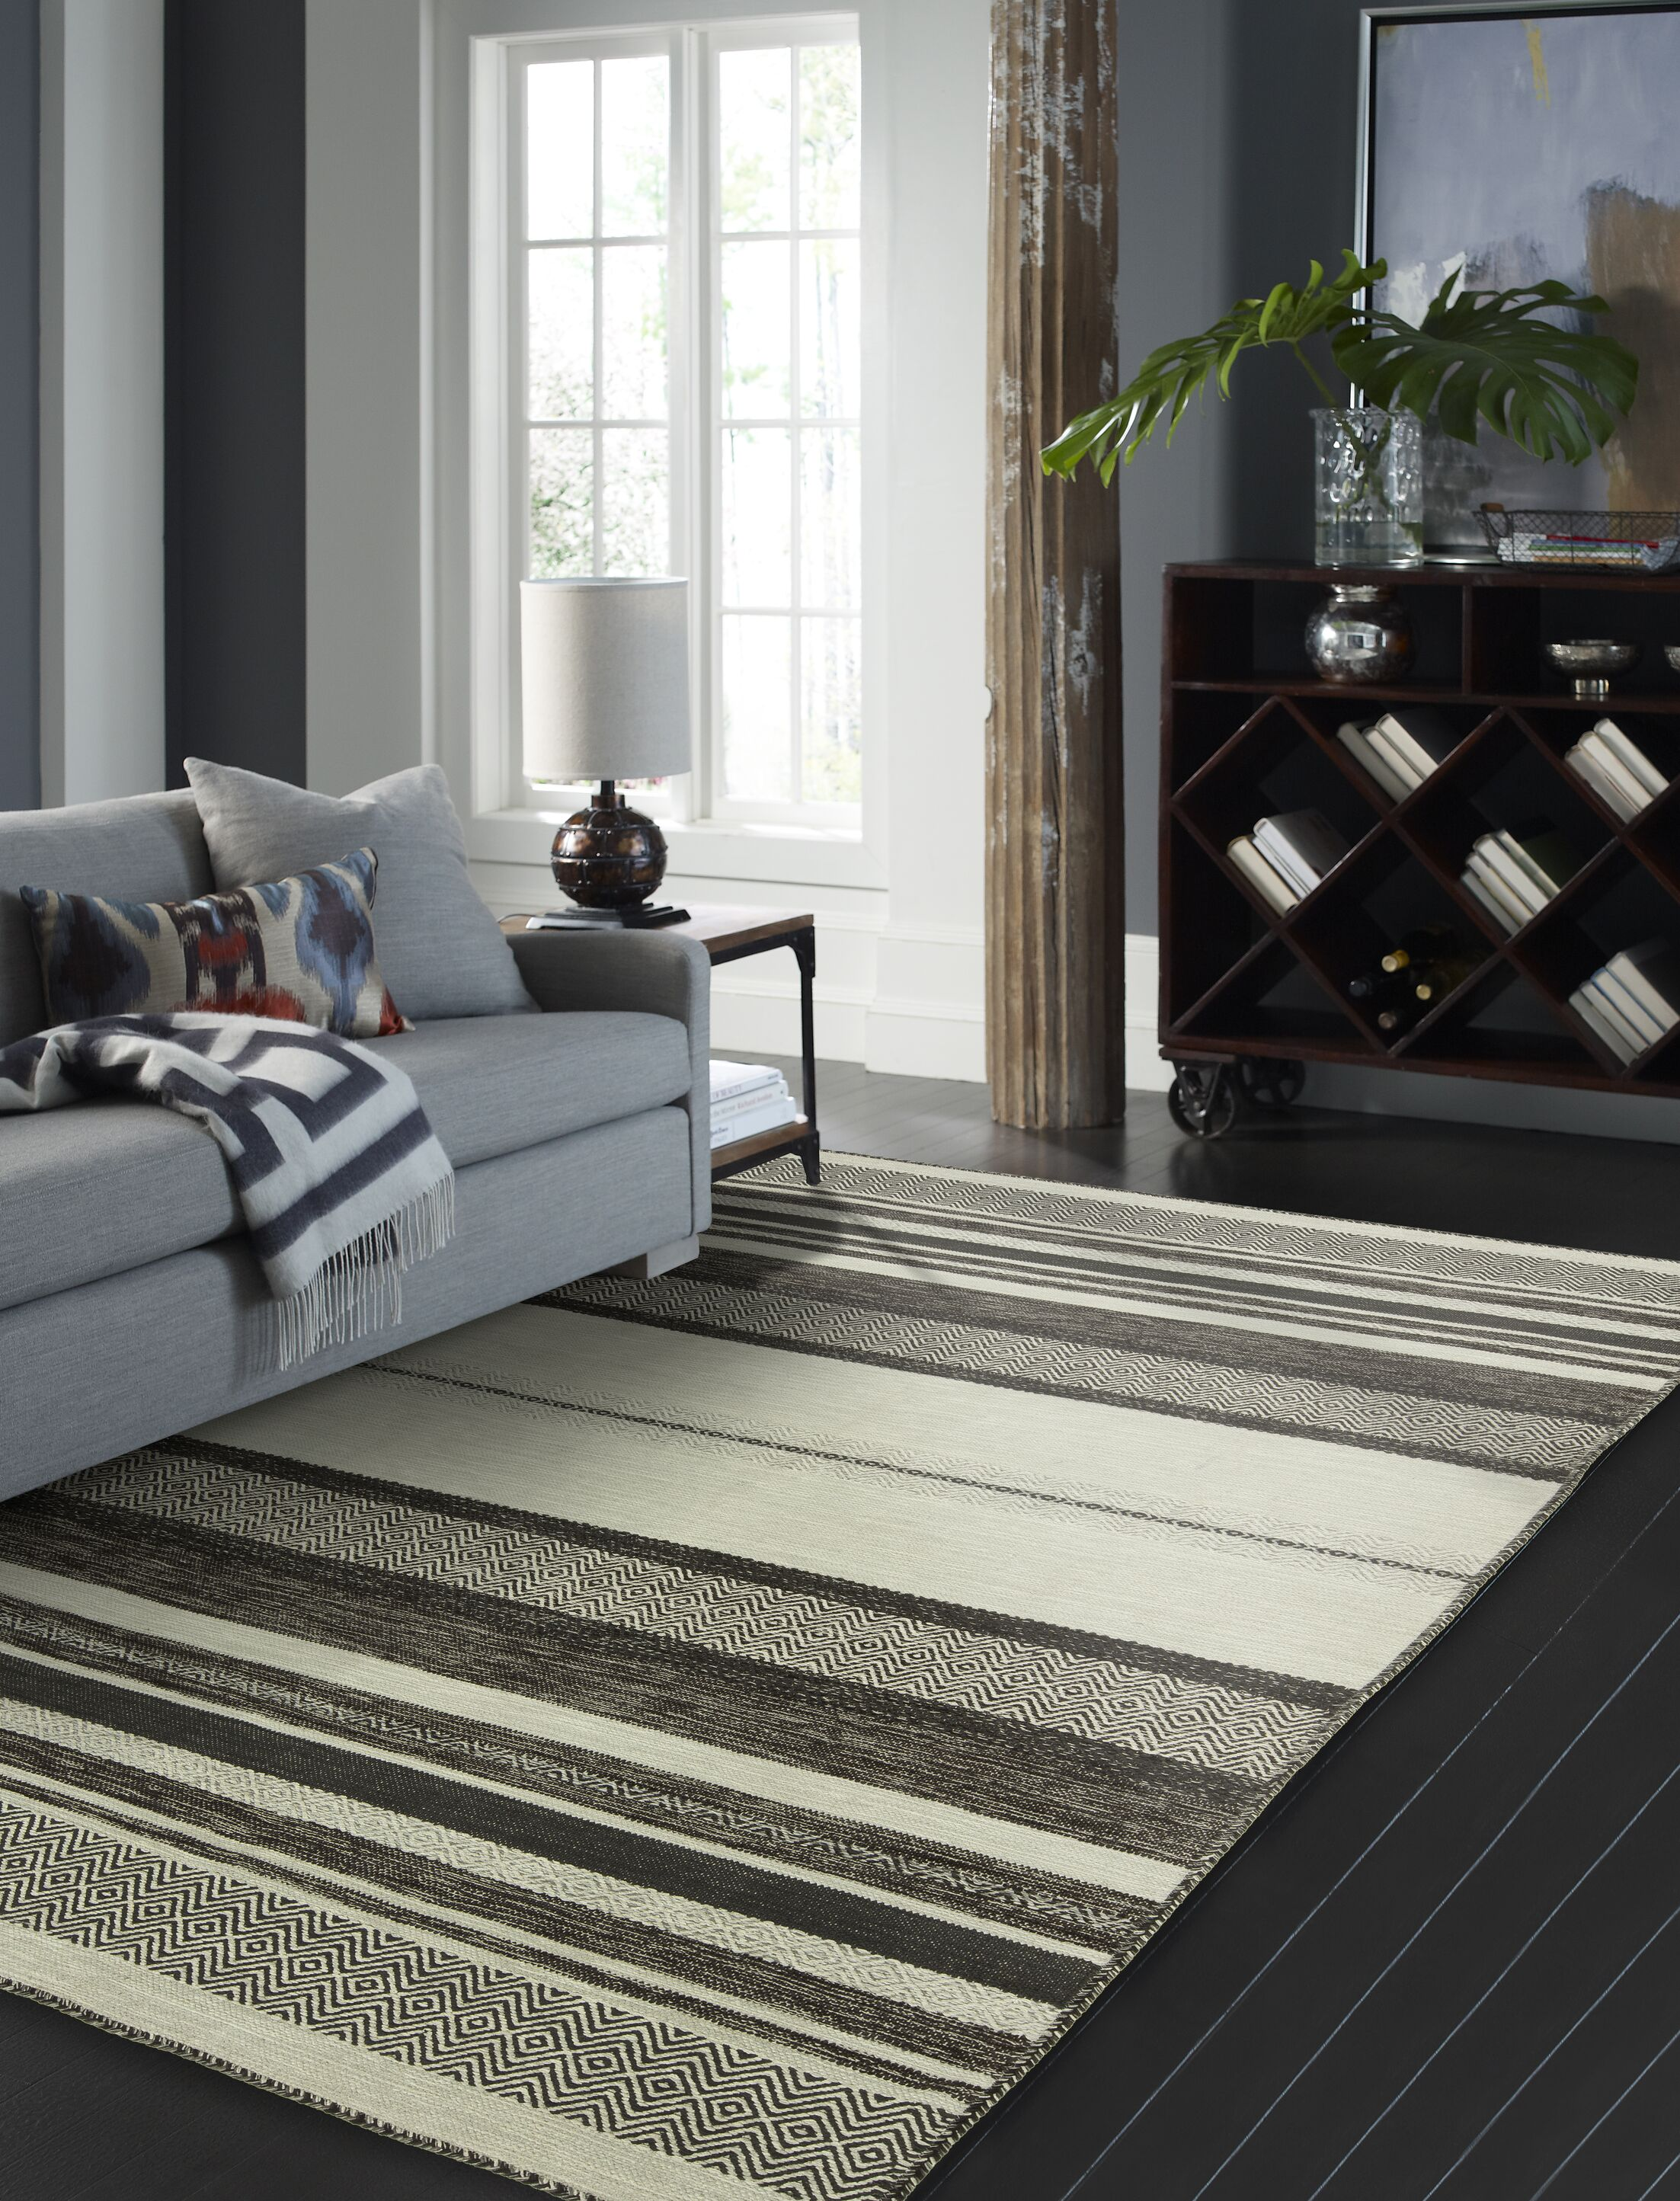 Phillipston Graphite Hand-Knotted Cotton Gray Area Rug Rug Size: Runner 2'6